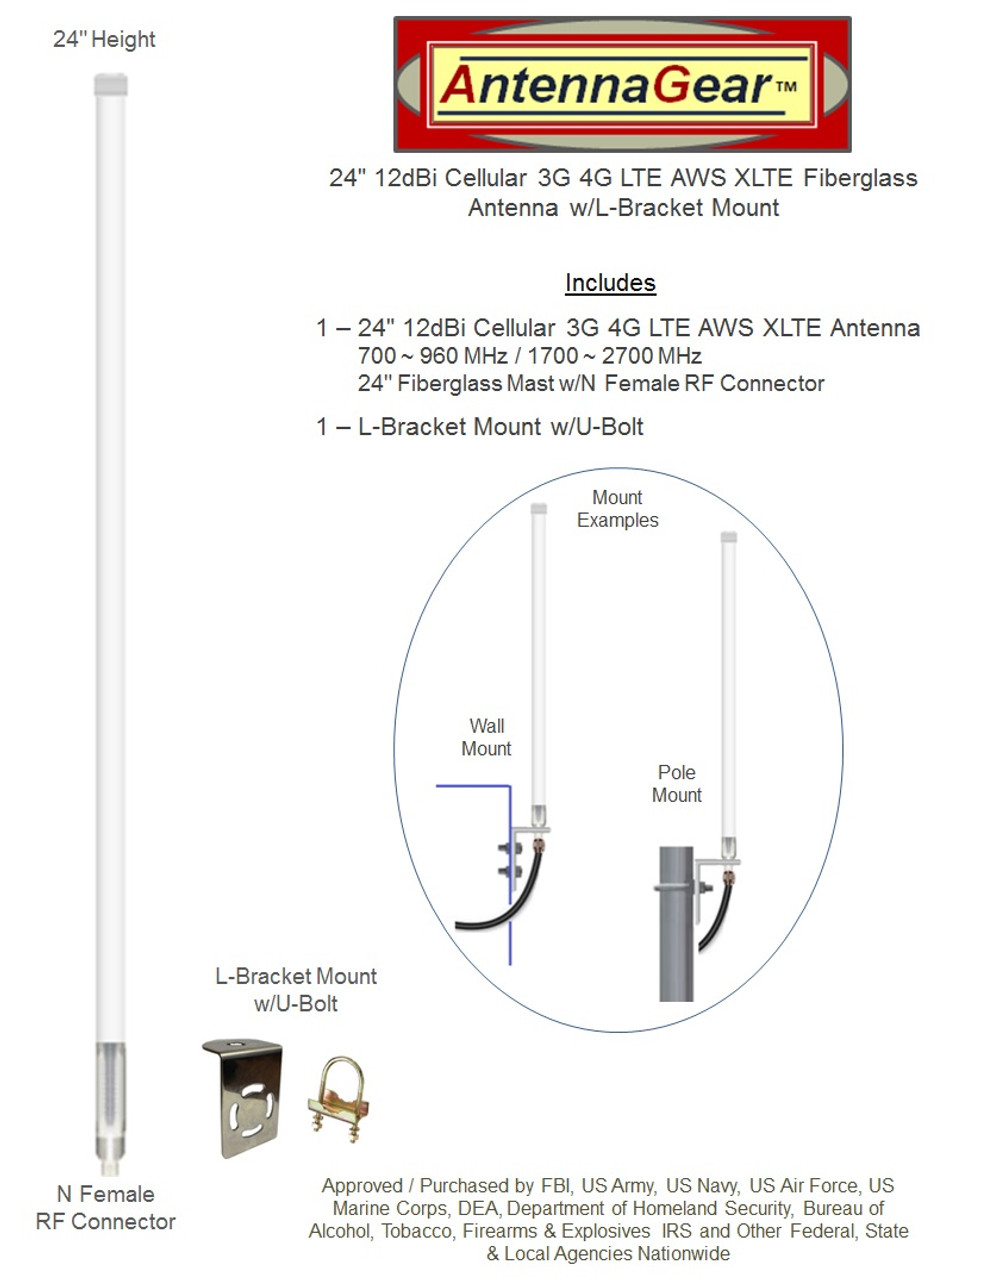 12dB Fiberglass 4G 5G LTE XLTE Antenna Kit AT&T ZTE Velocity 2 MF985 Mobile Hotspot w/ Cable Length Options